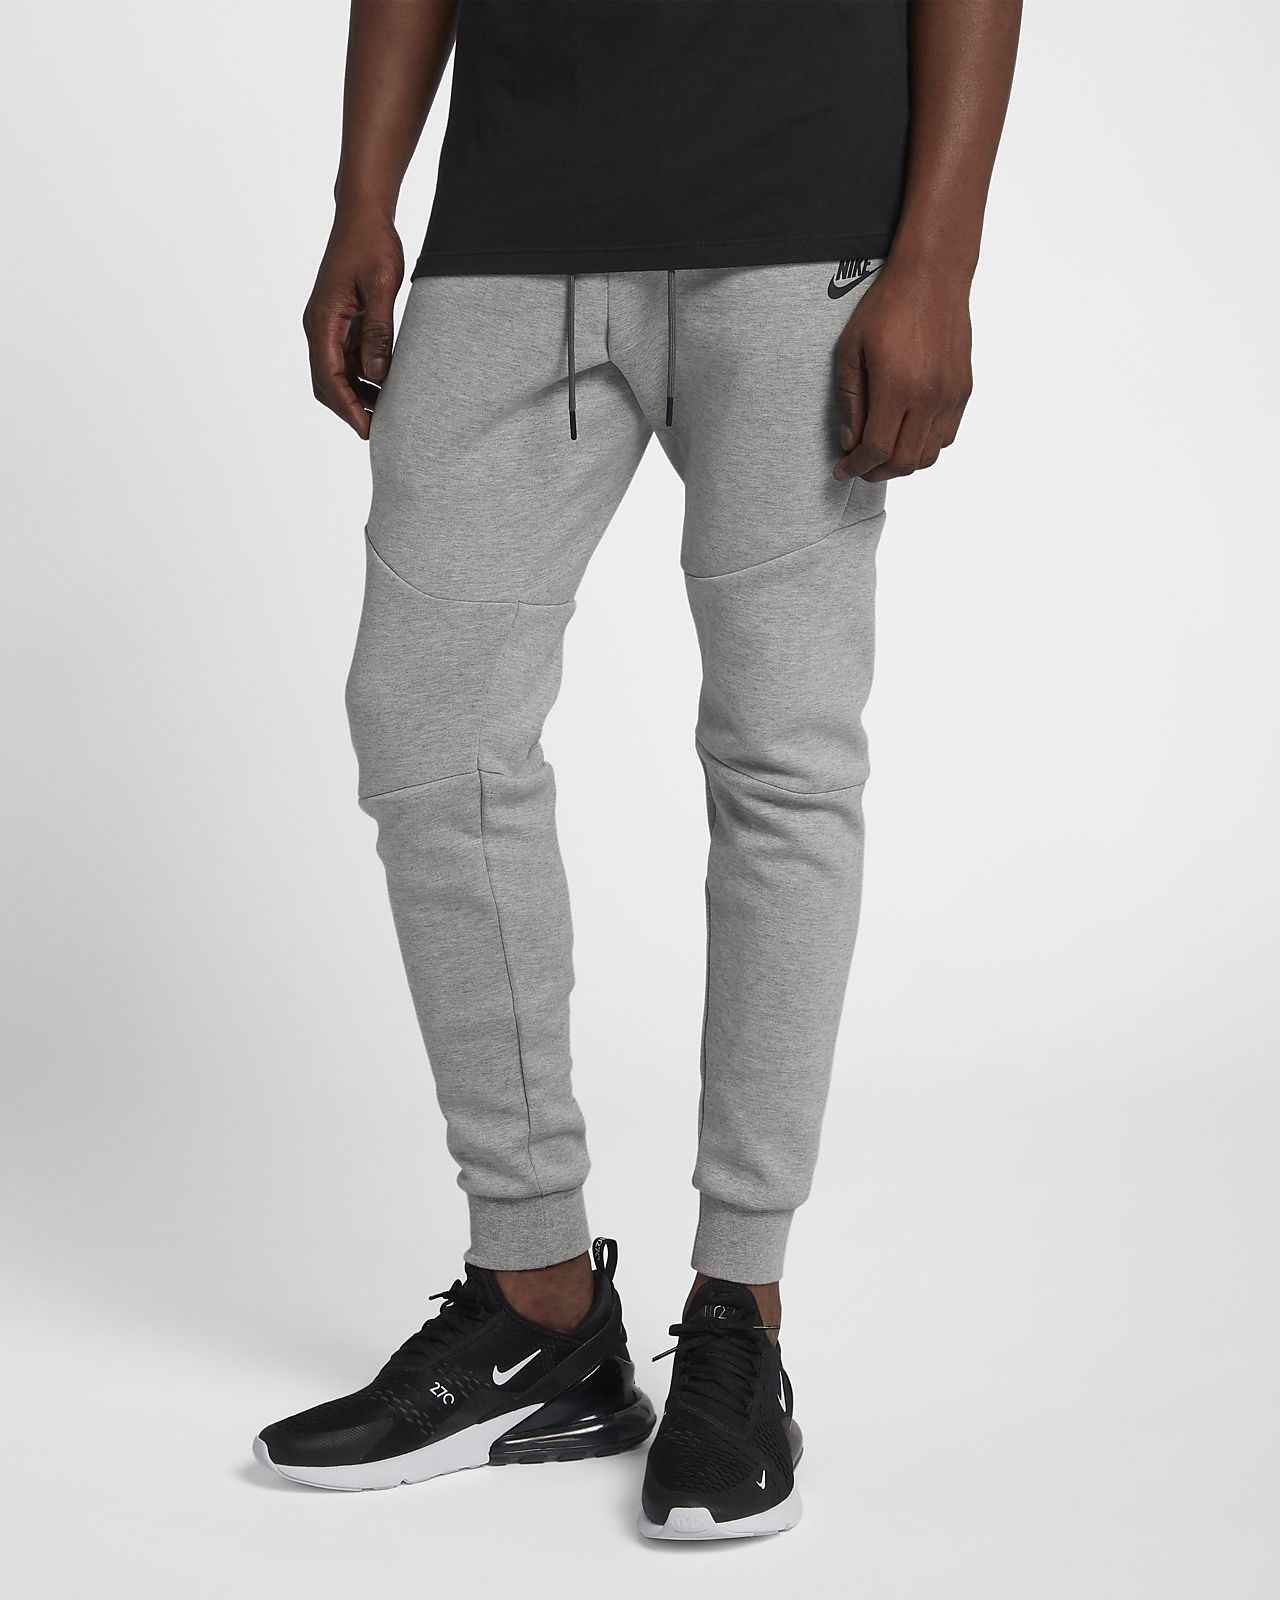 c1c2125fd4 Nike Sportswear Tech Fleece Men s Joggers. Nike.com